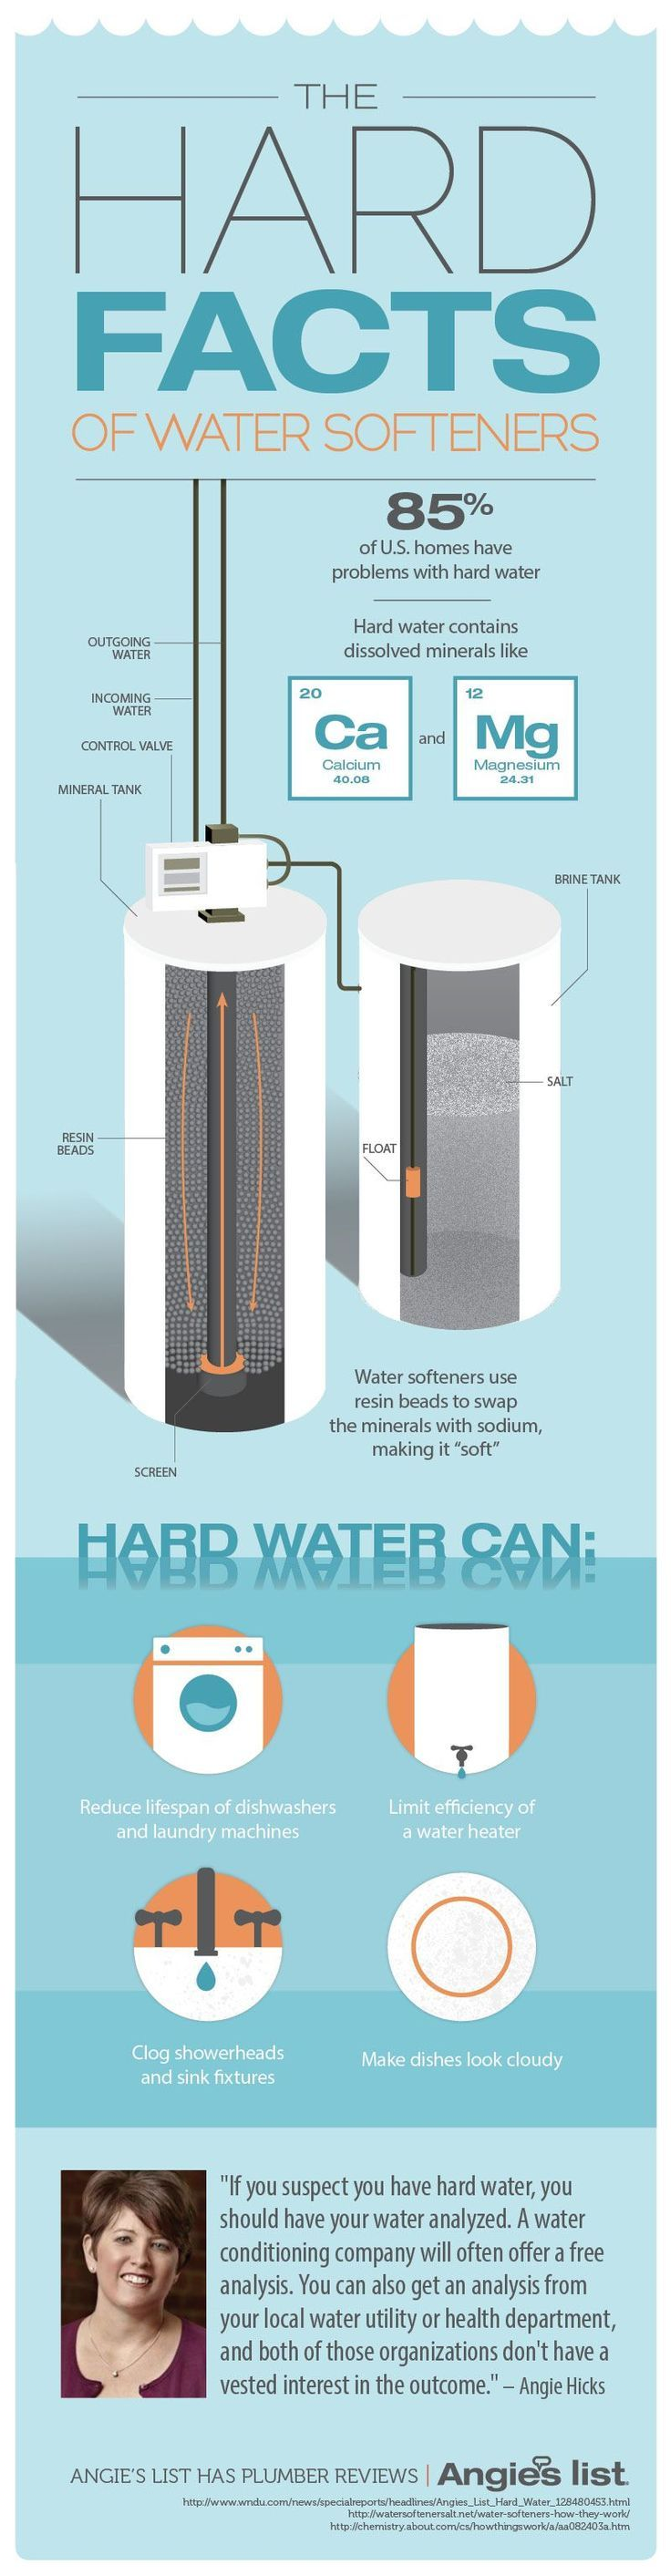 85% of U.S. homes have problems with hard water